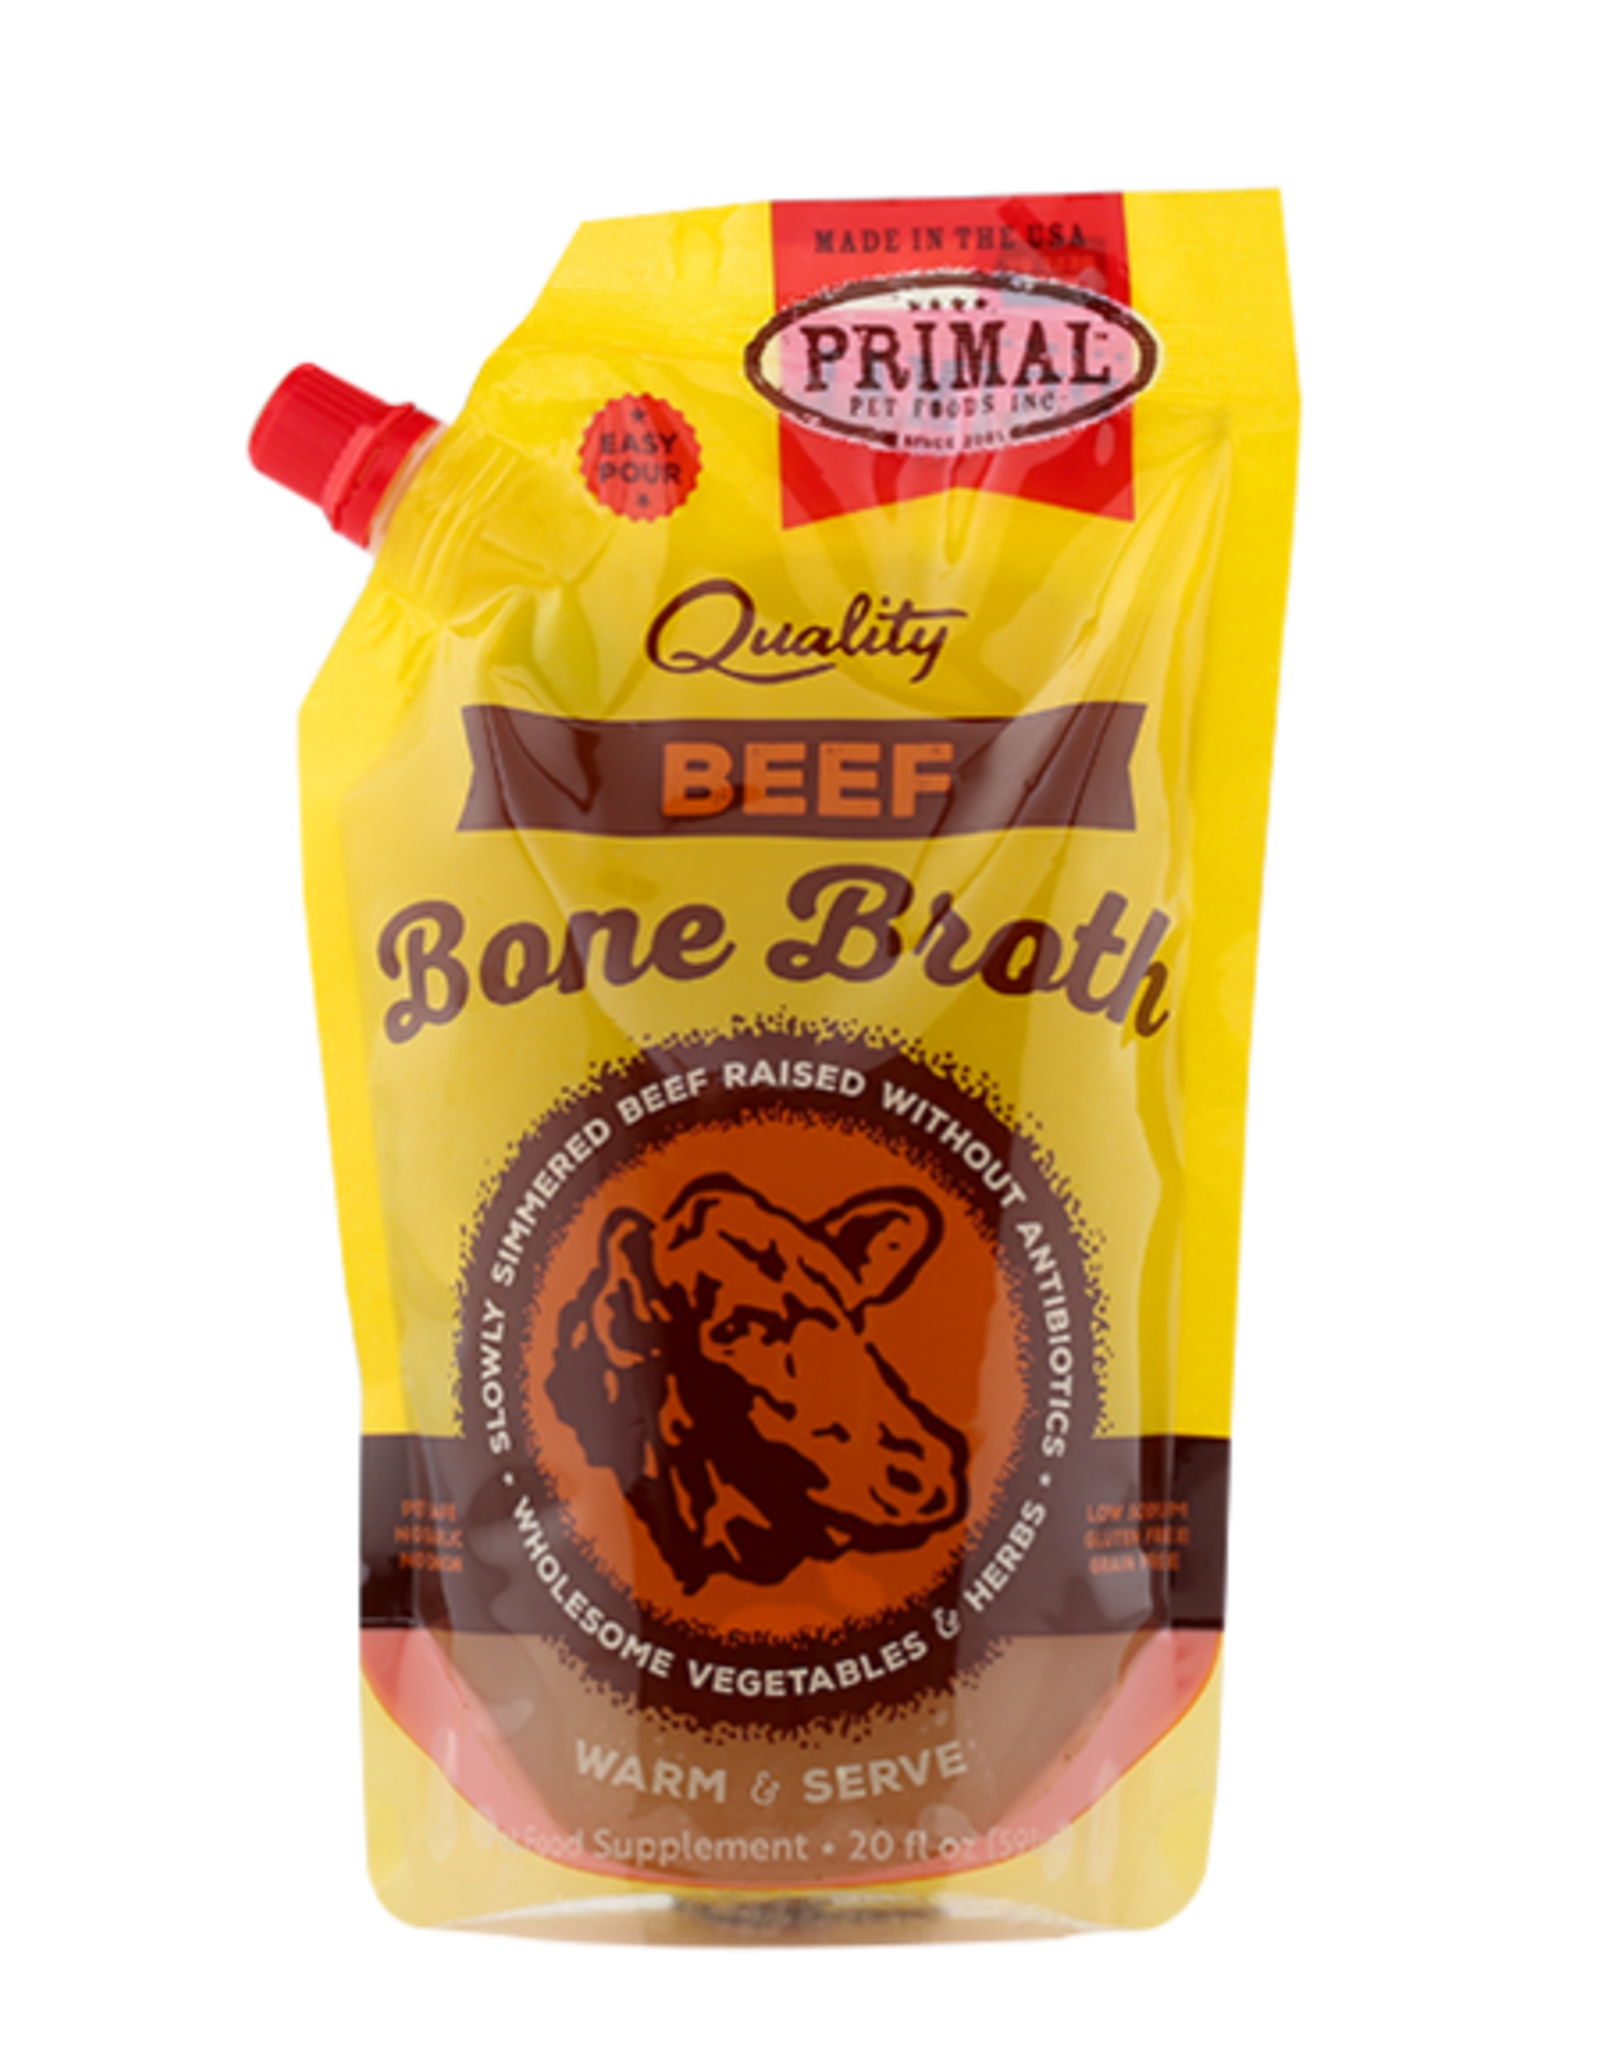 Primal Primal Bone Broth - Beef